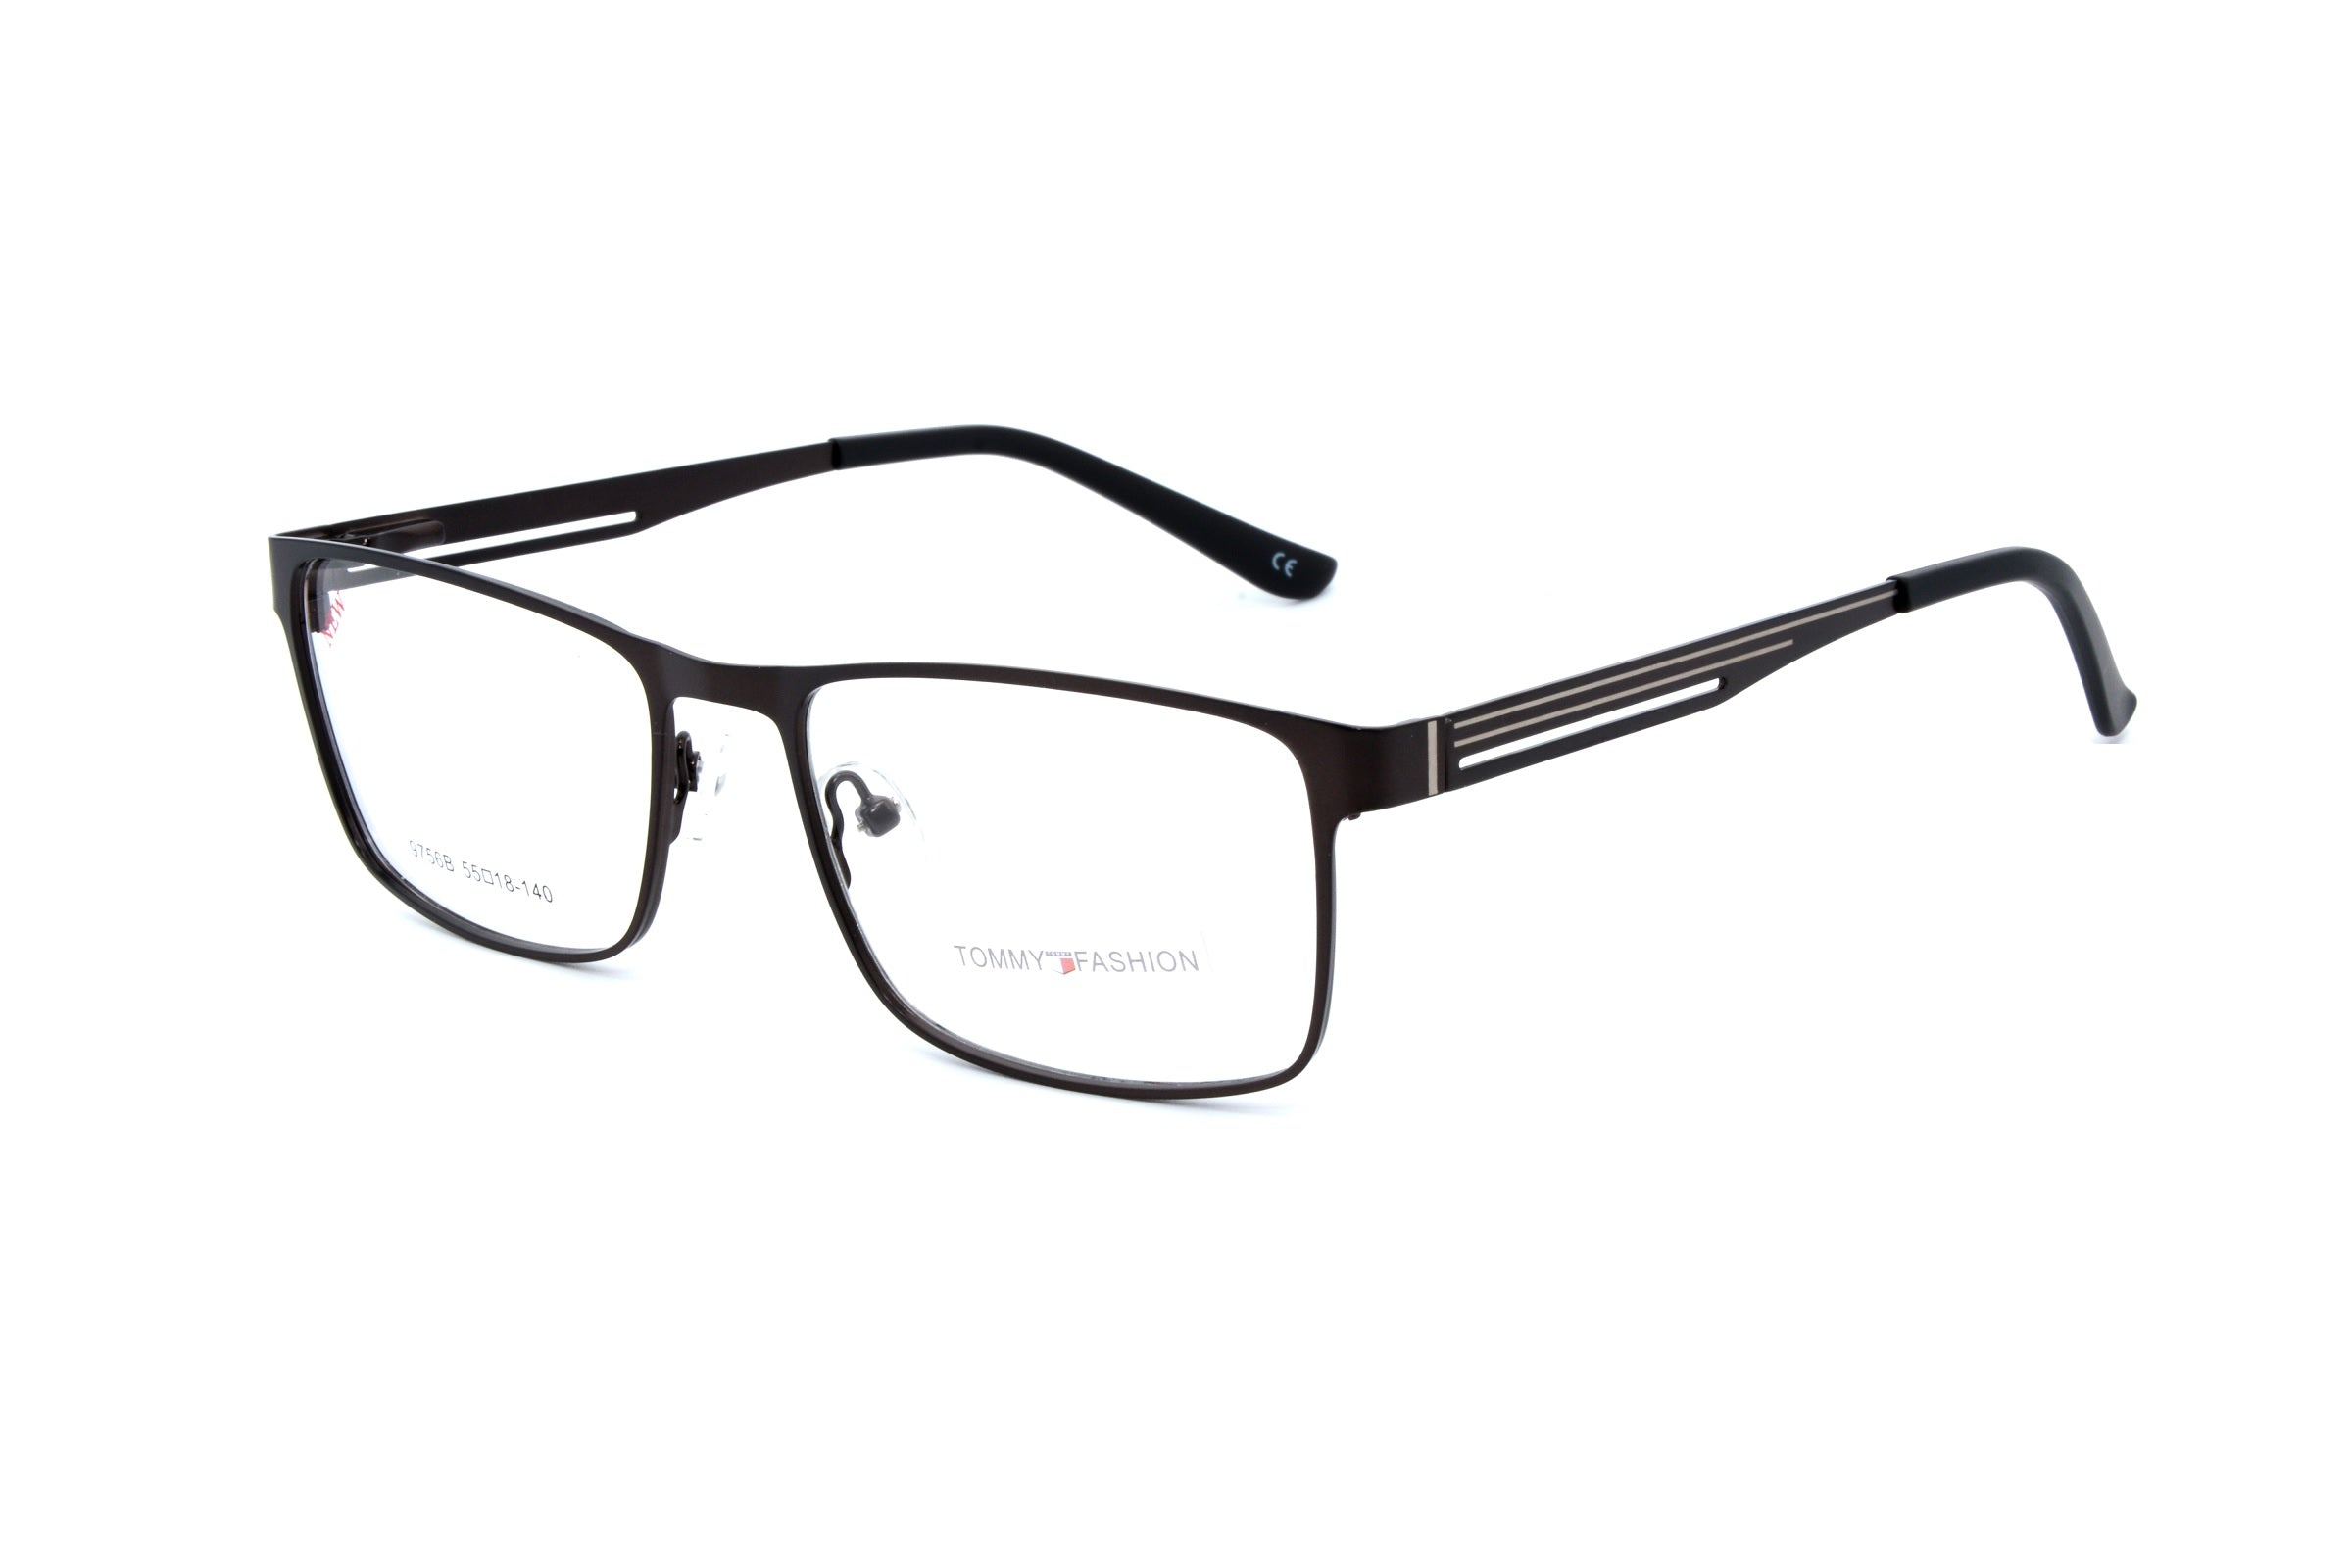 Tommy Fashion eyewear 9756B, C3 - Optics Trading